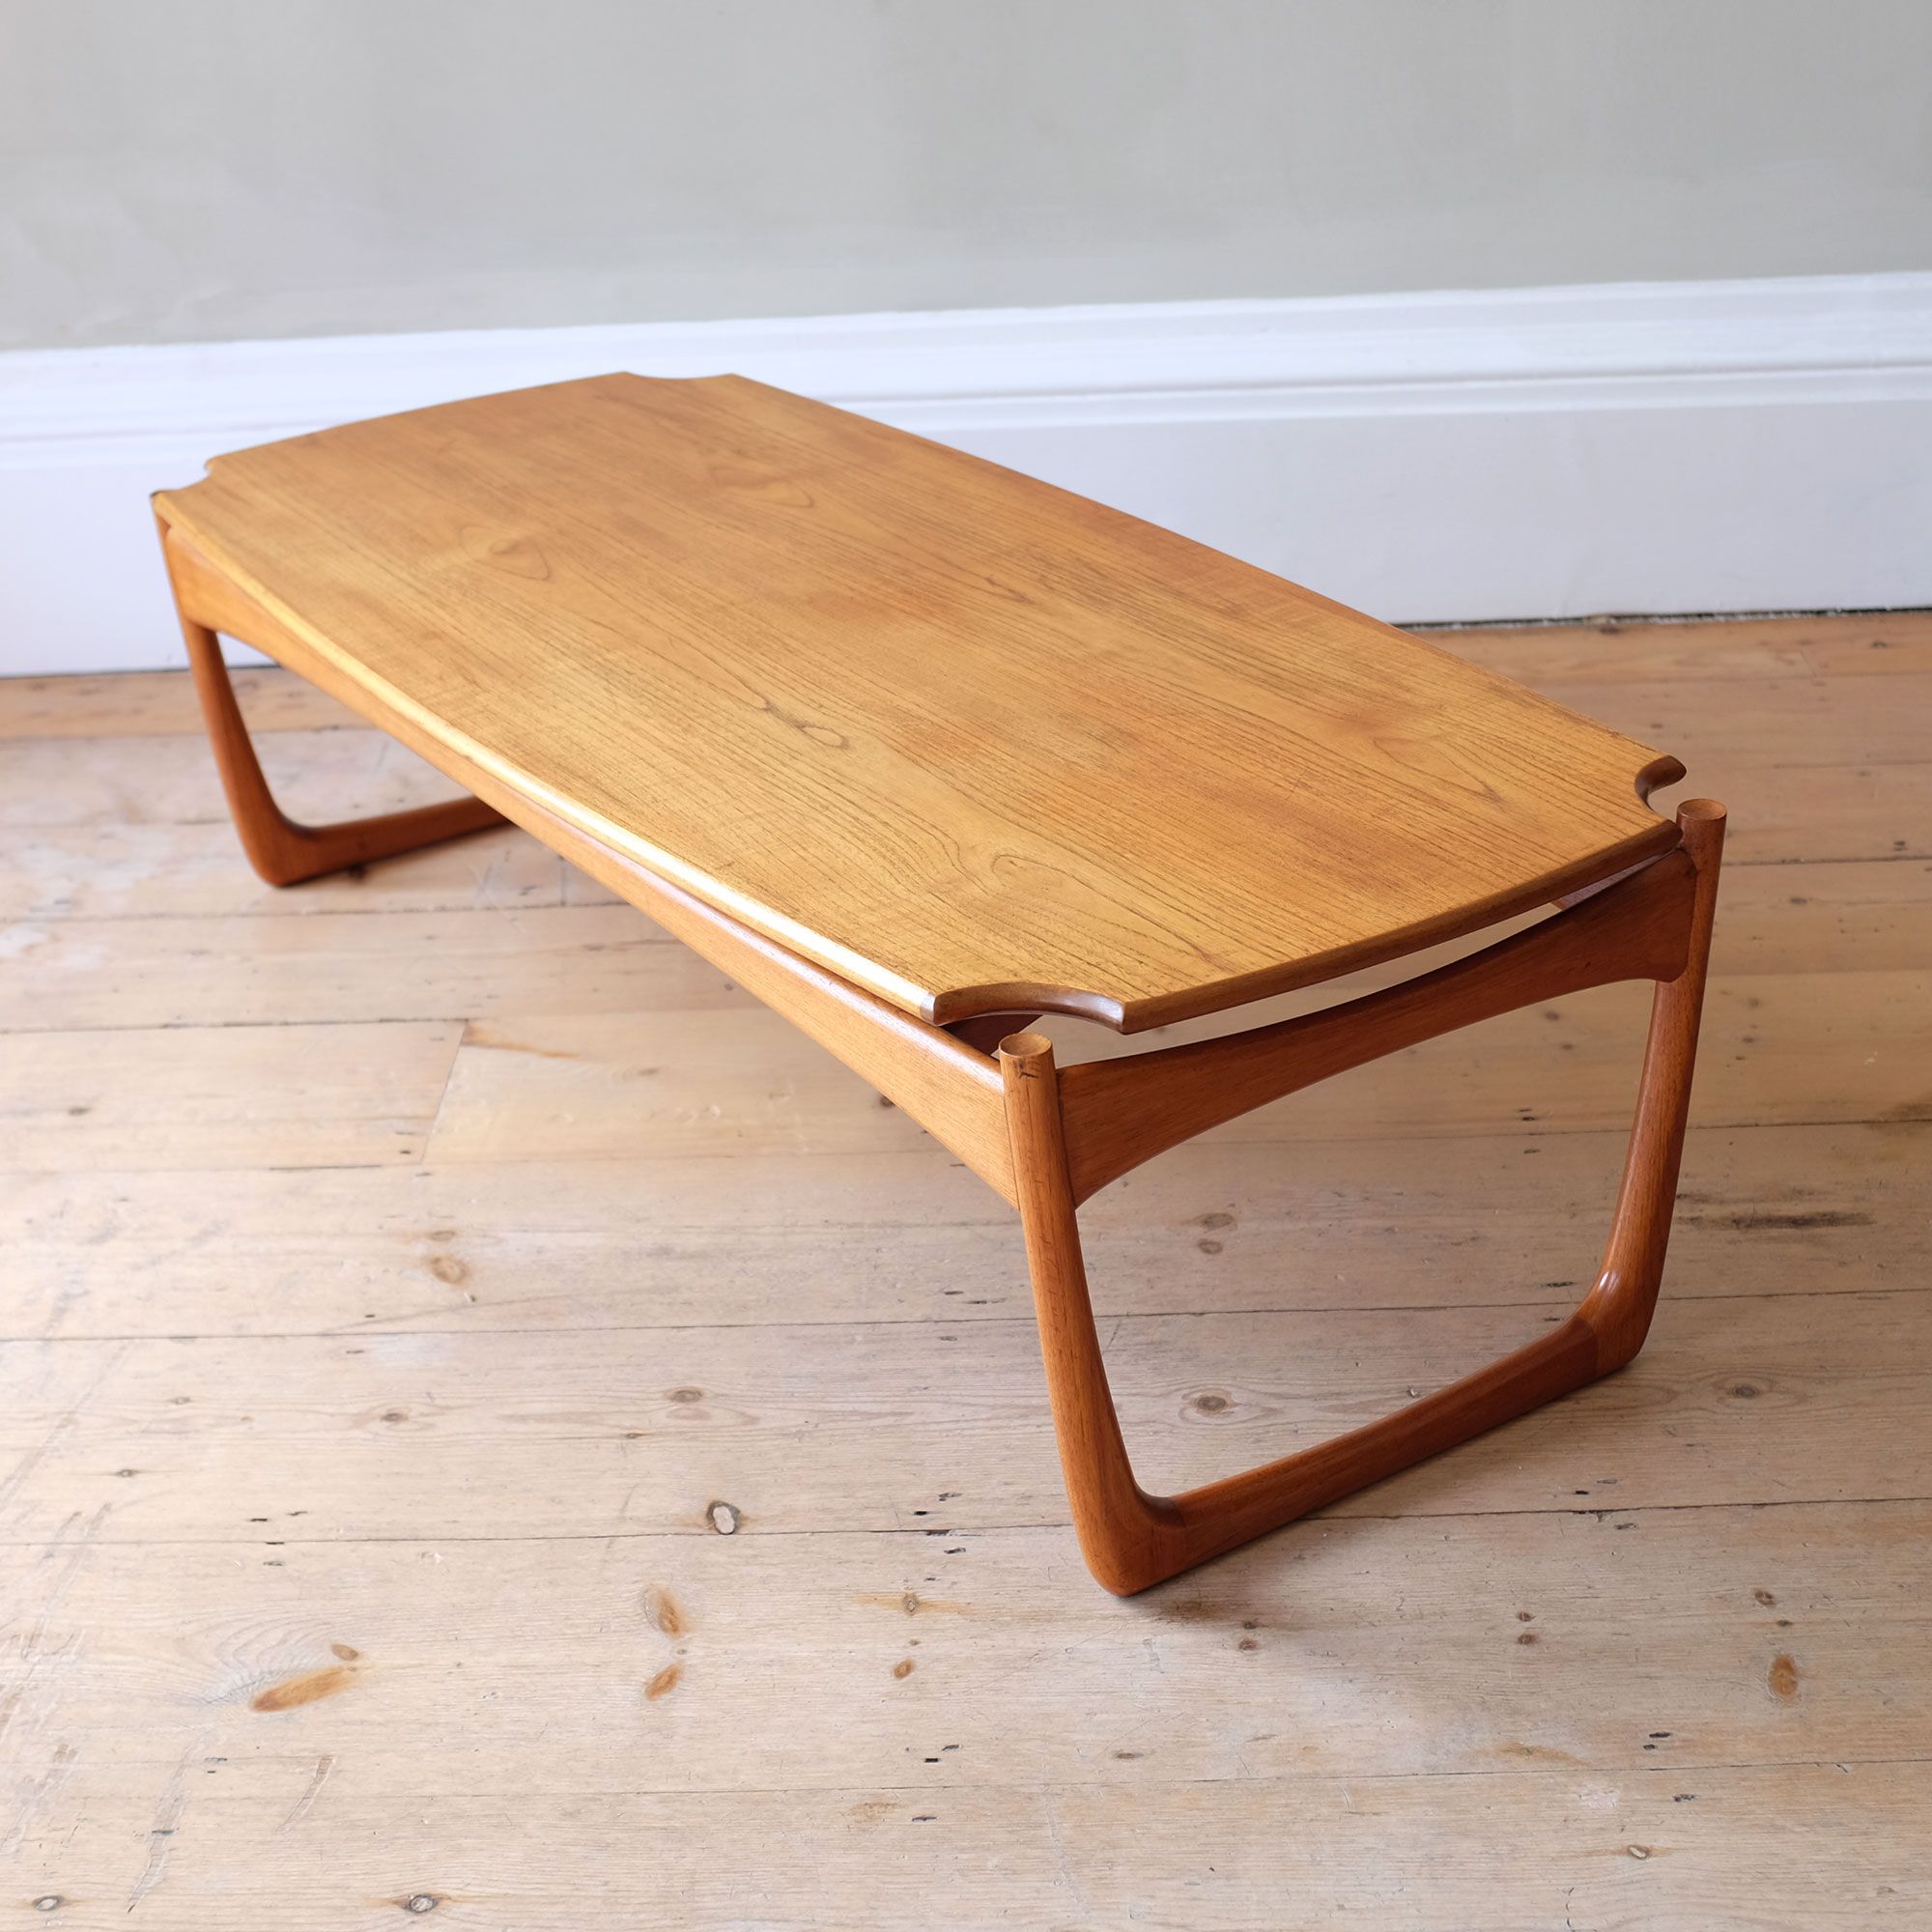 Large-Vintage-Wooden-Coffee-Table-viii